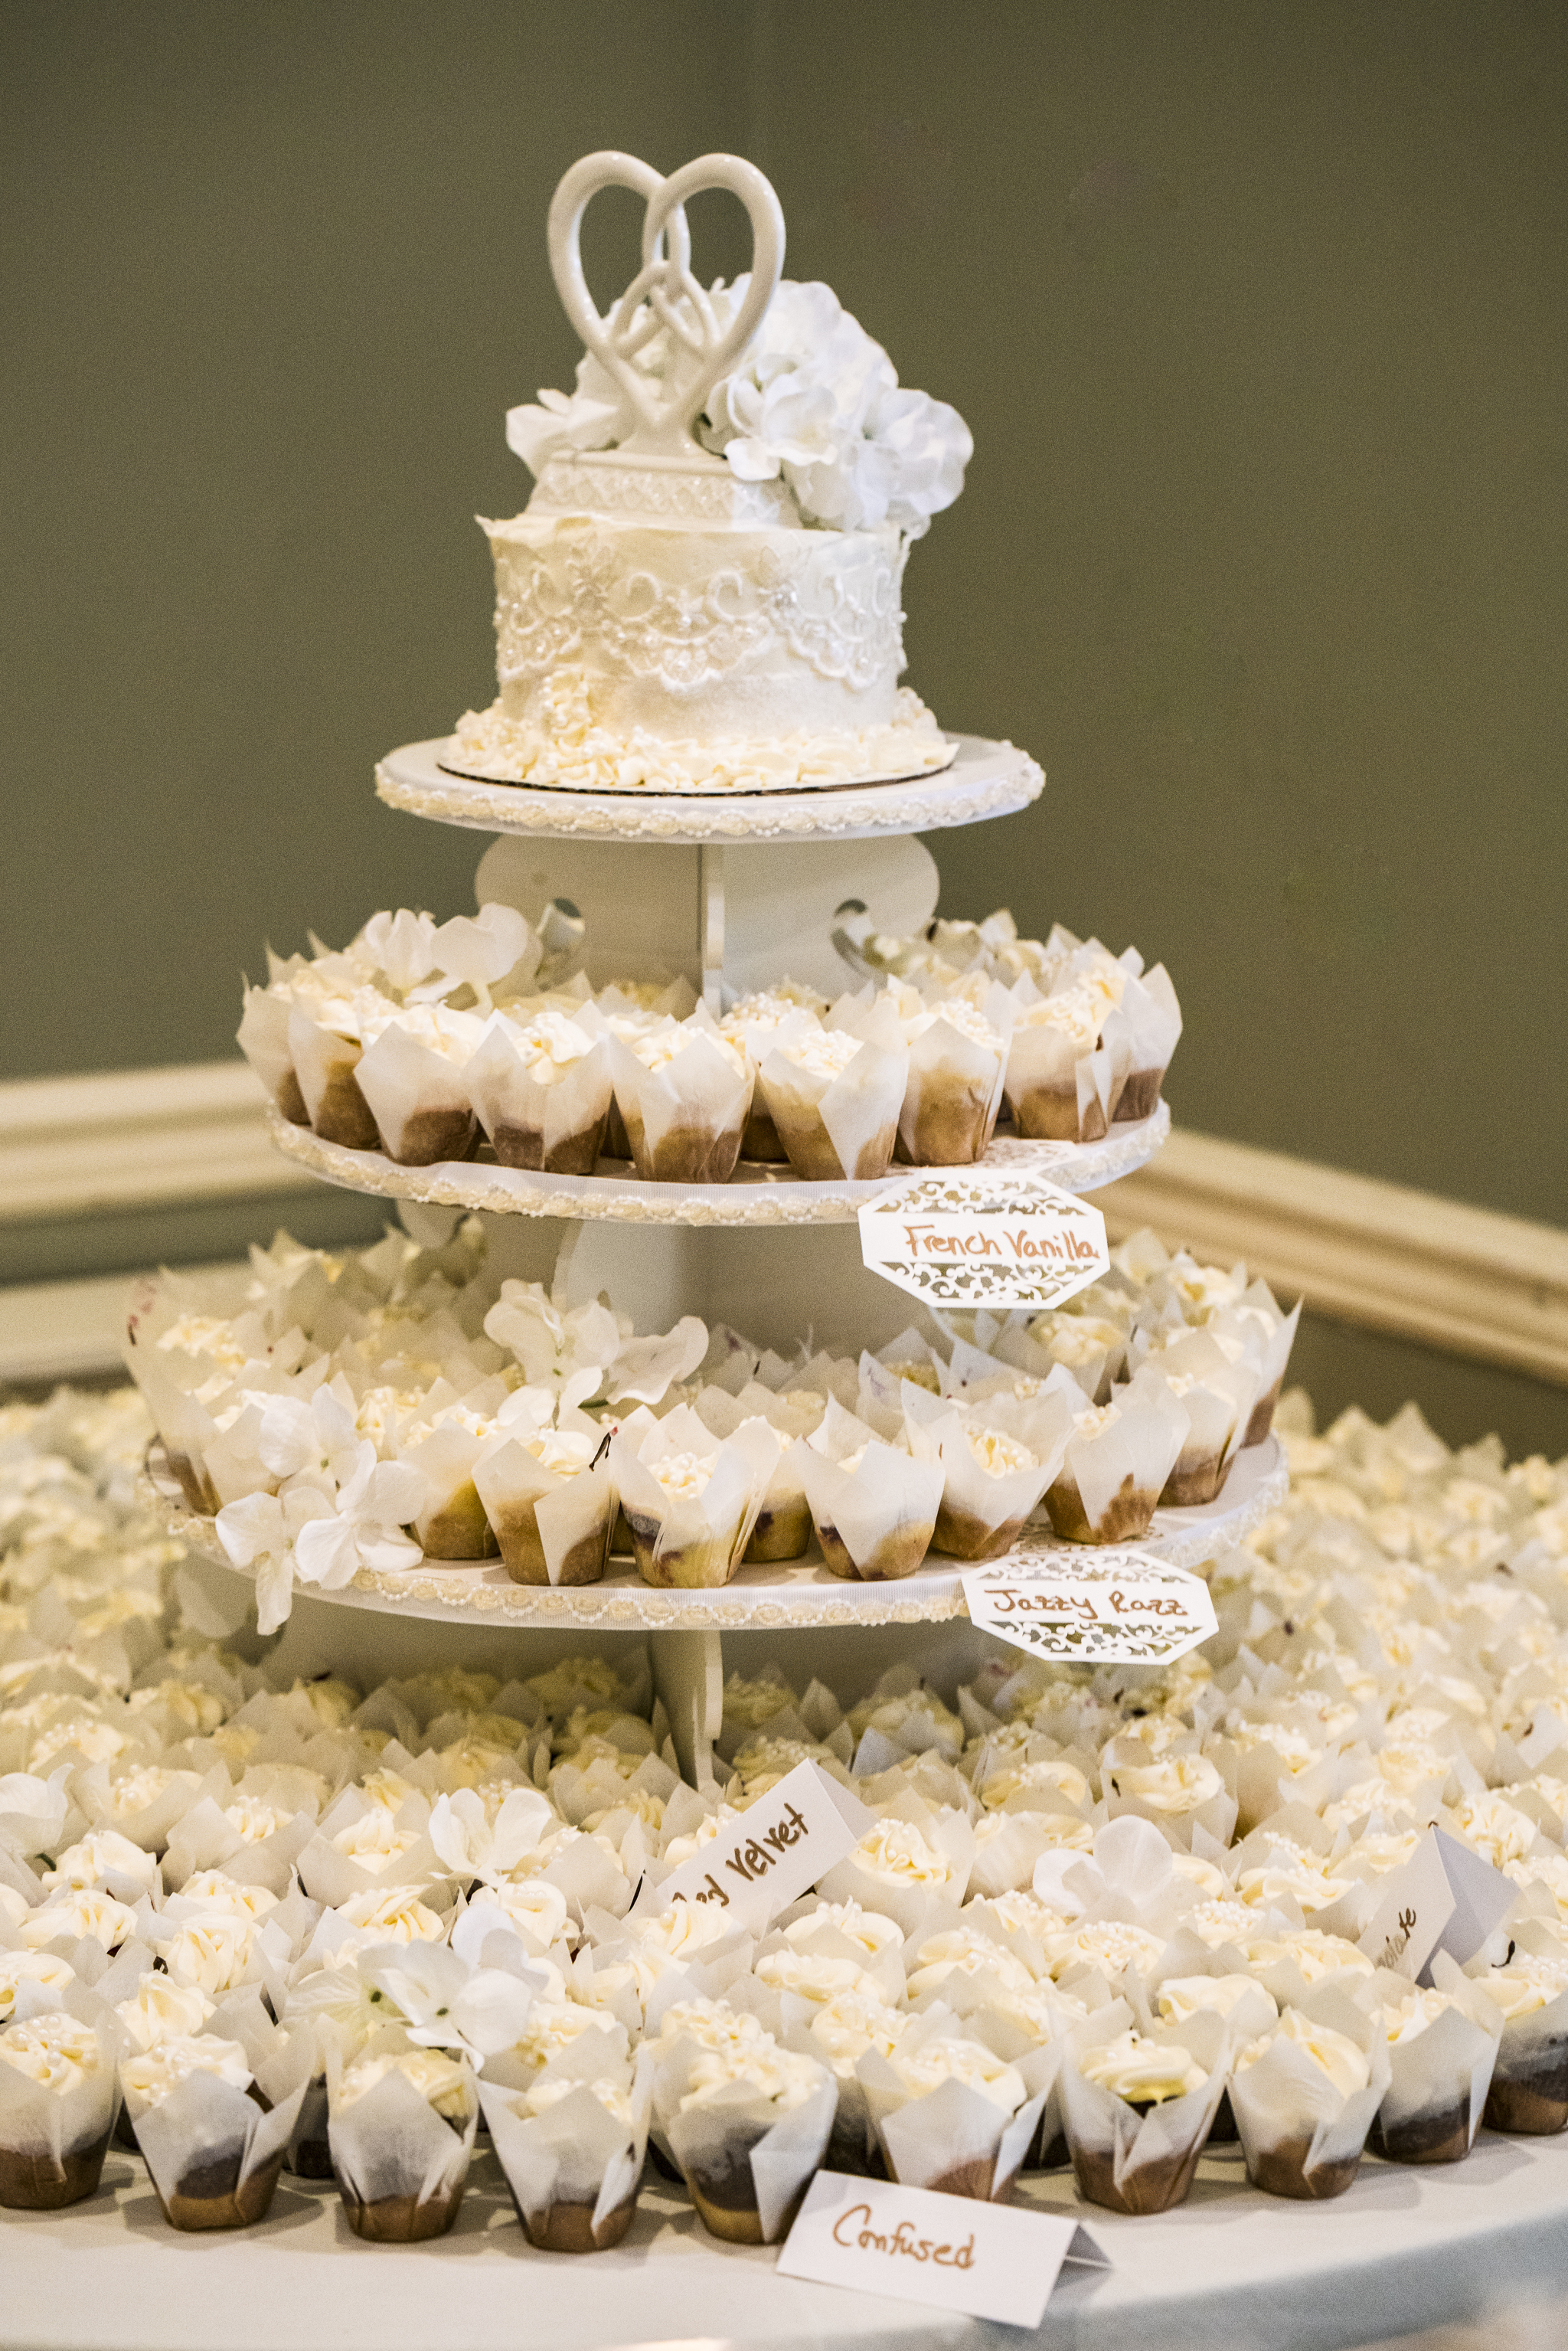 JB-Wedding-Online-Reception-18.jpg